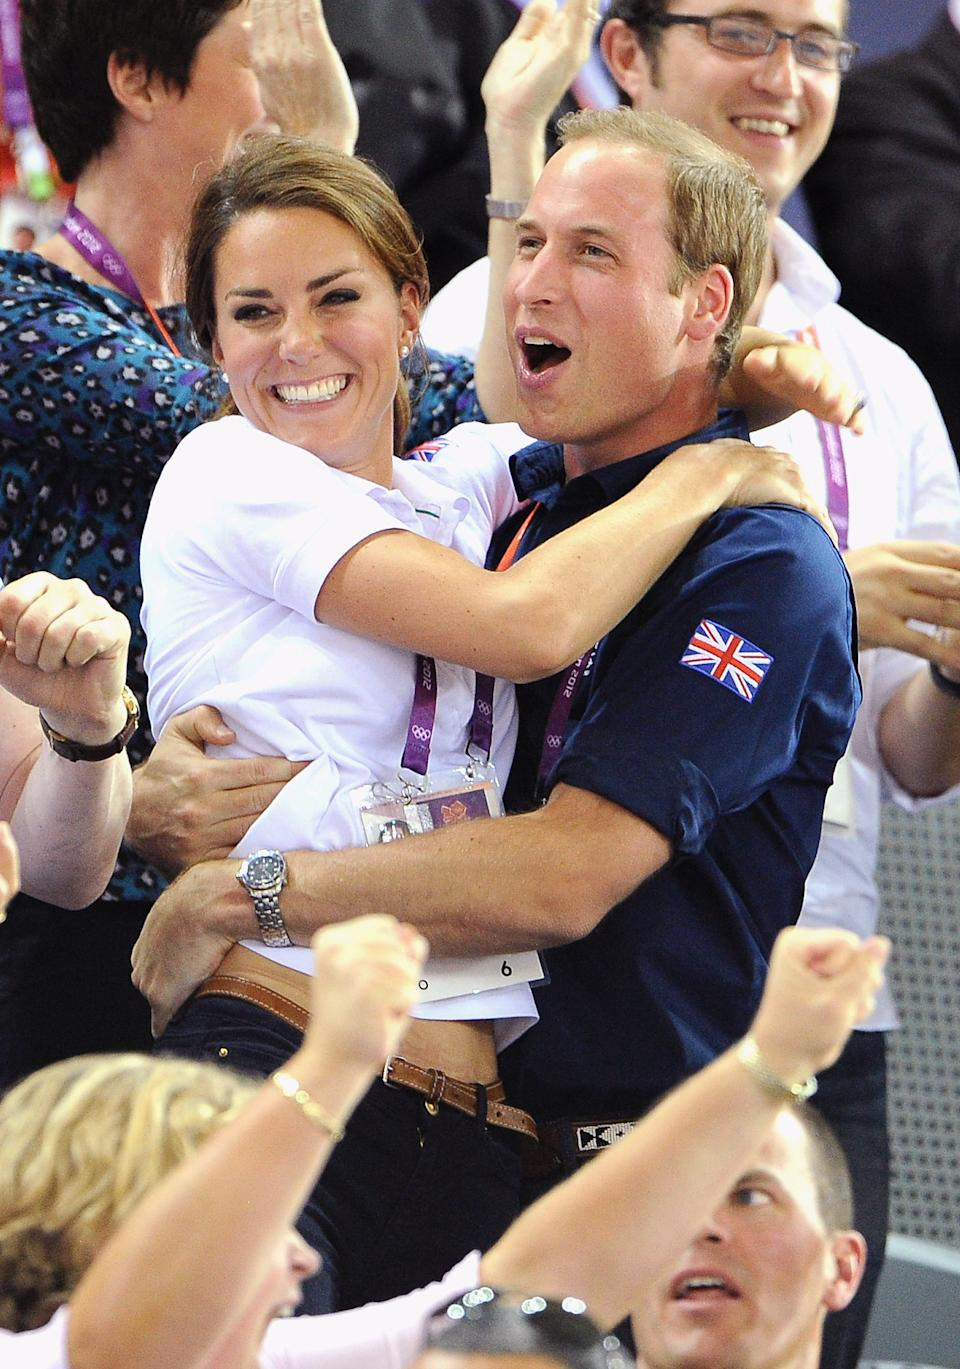 <p>From college sweethearts to husband and wife - the Duke and Duchess of Cambridge are longtime loves that have weathered the storms of a life in the public eye. <em>(Image via Getty Images)</em></p>